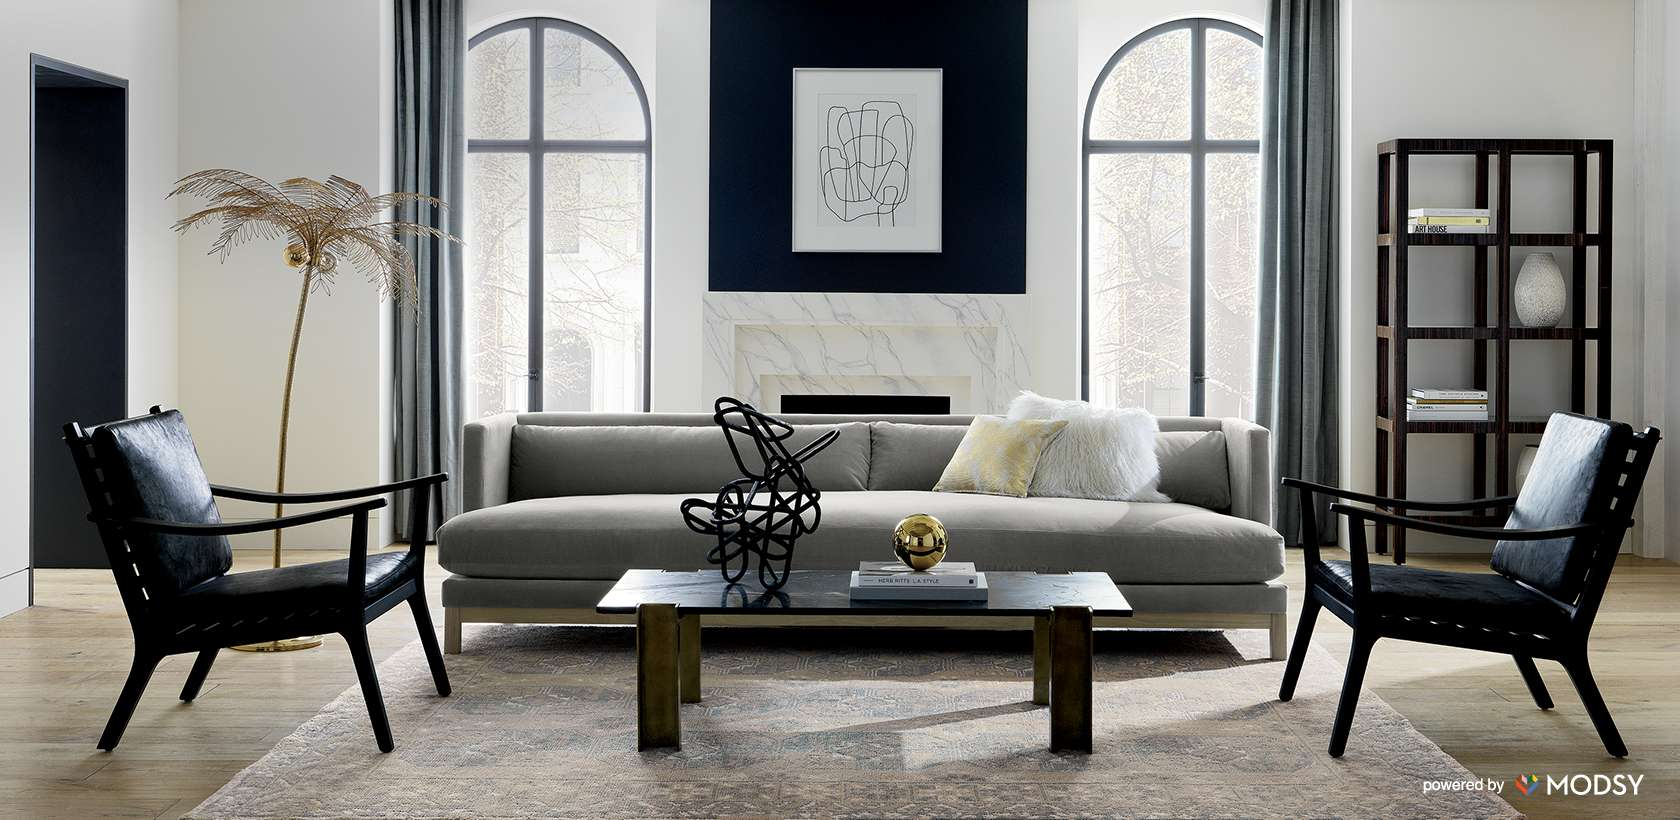 Unique Furniture Modern Edgy Cb2 Virtual Room Design Real Stylists